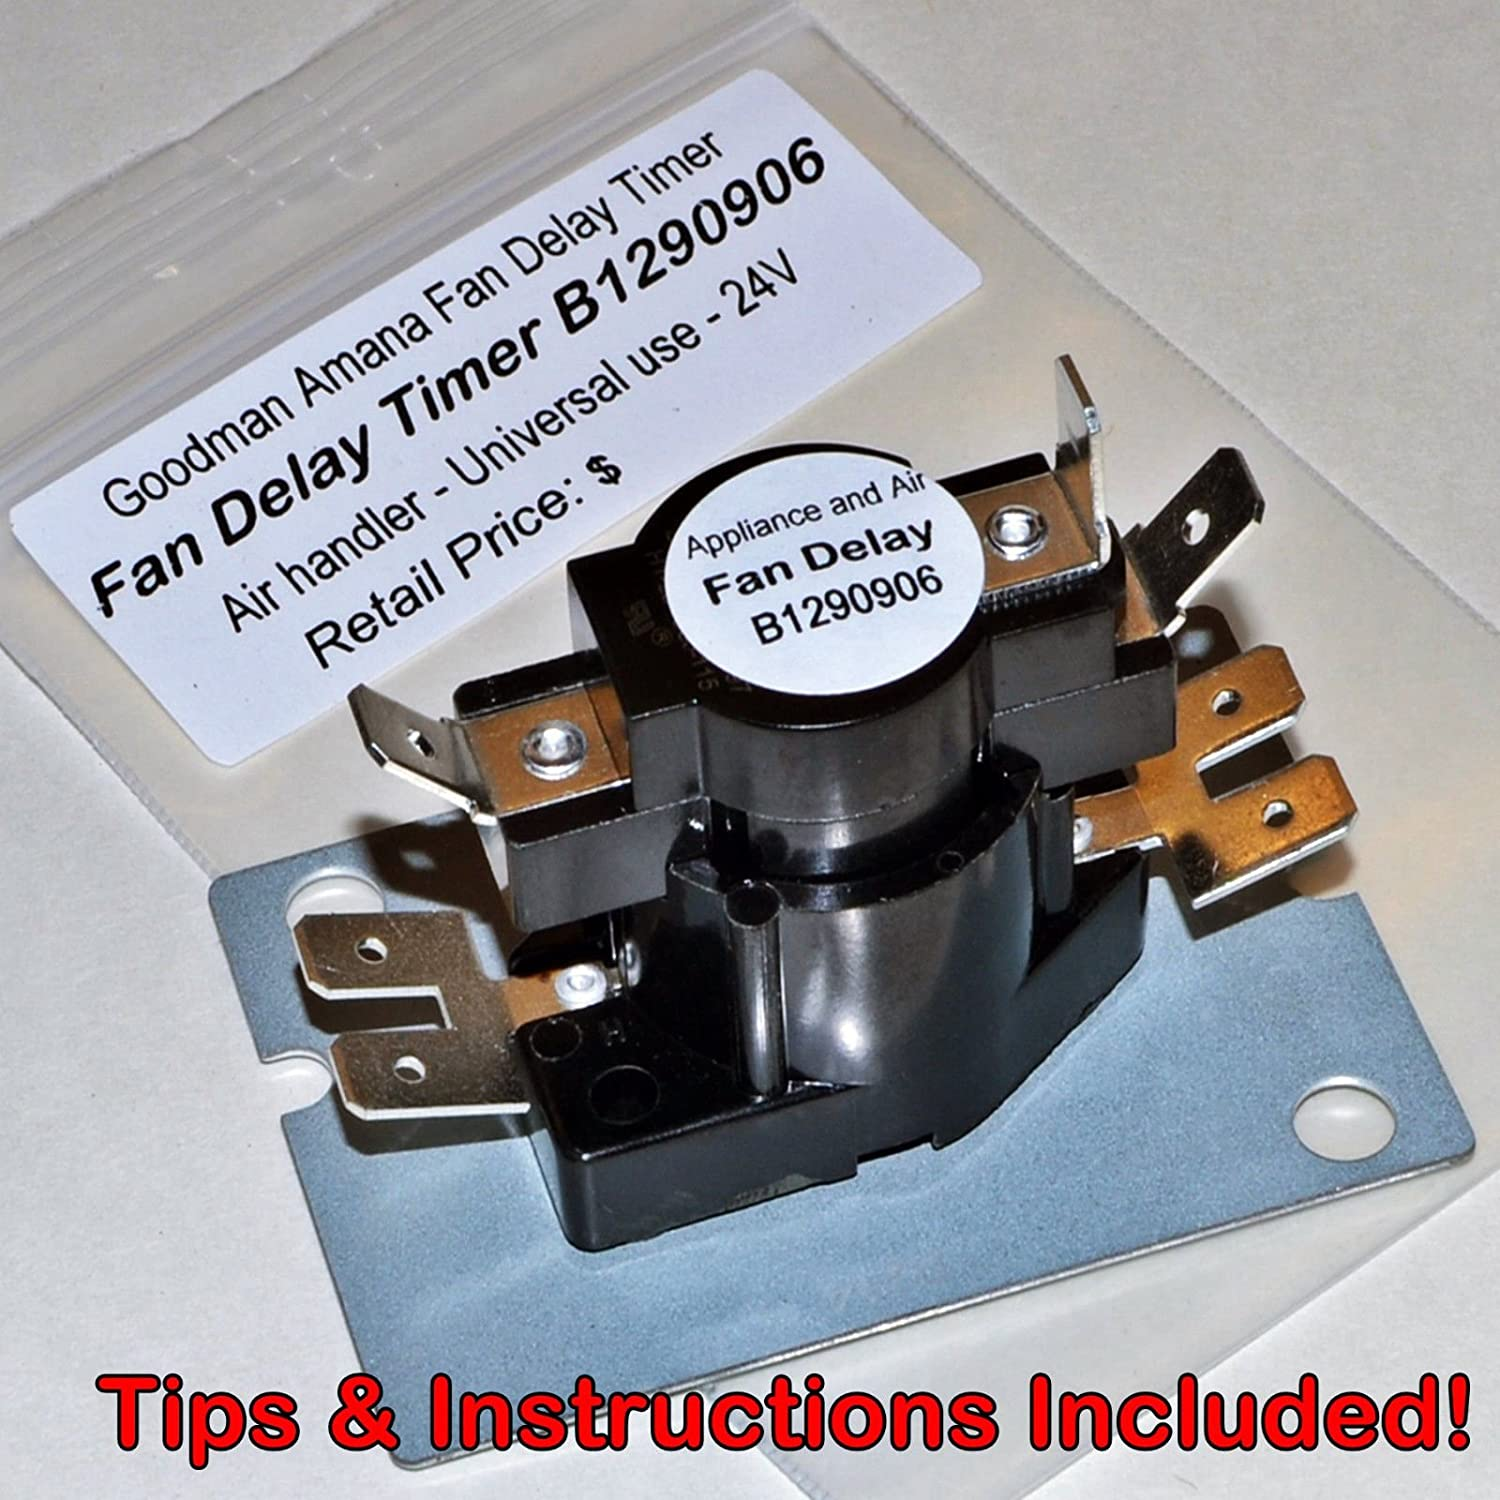 New Fan Blower Time Delay B1290906 24v Goodman Air Handler Relay Circuit Board Conditioner Instructions